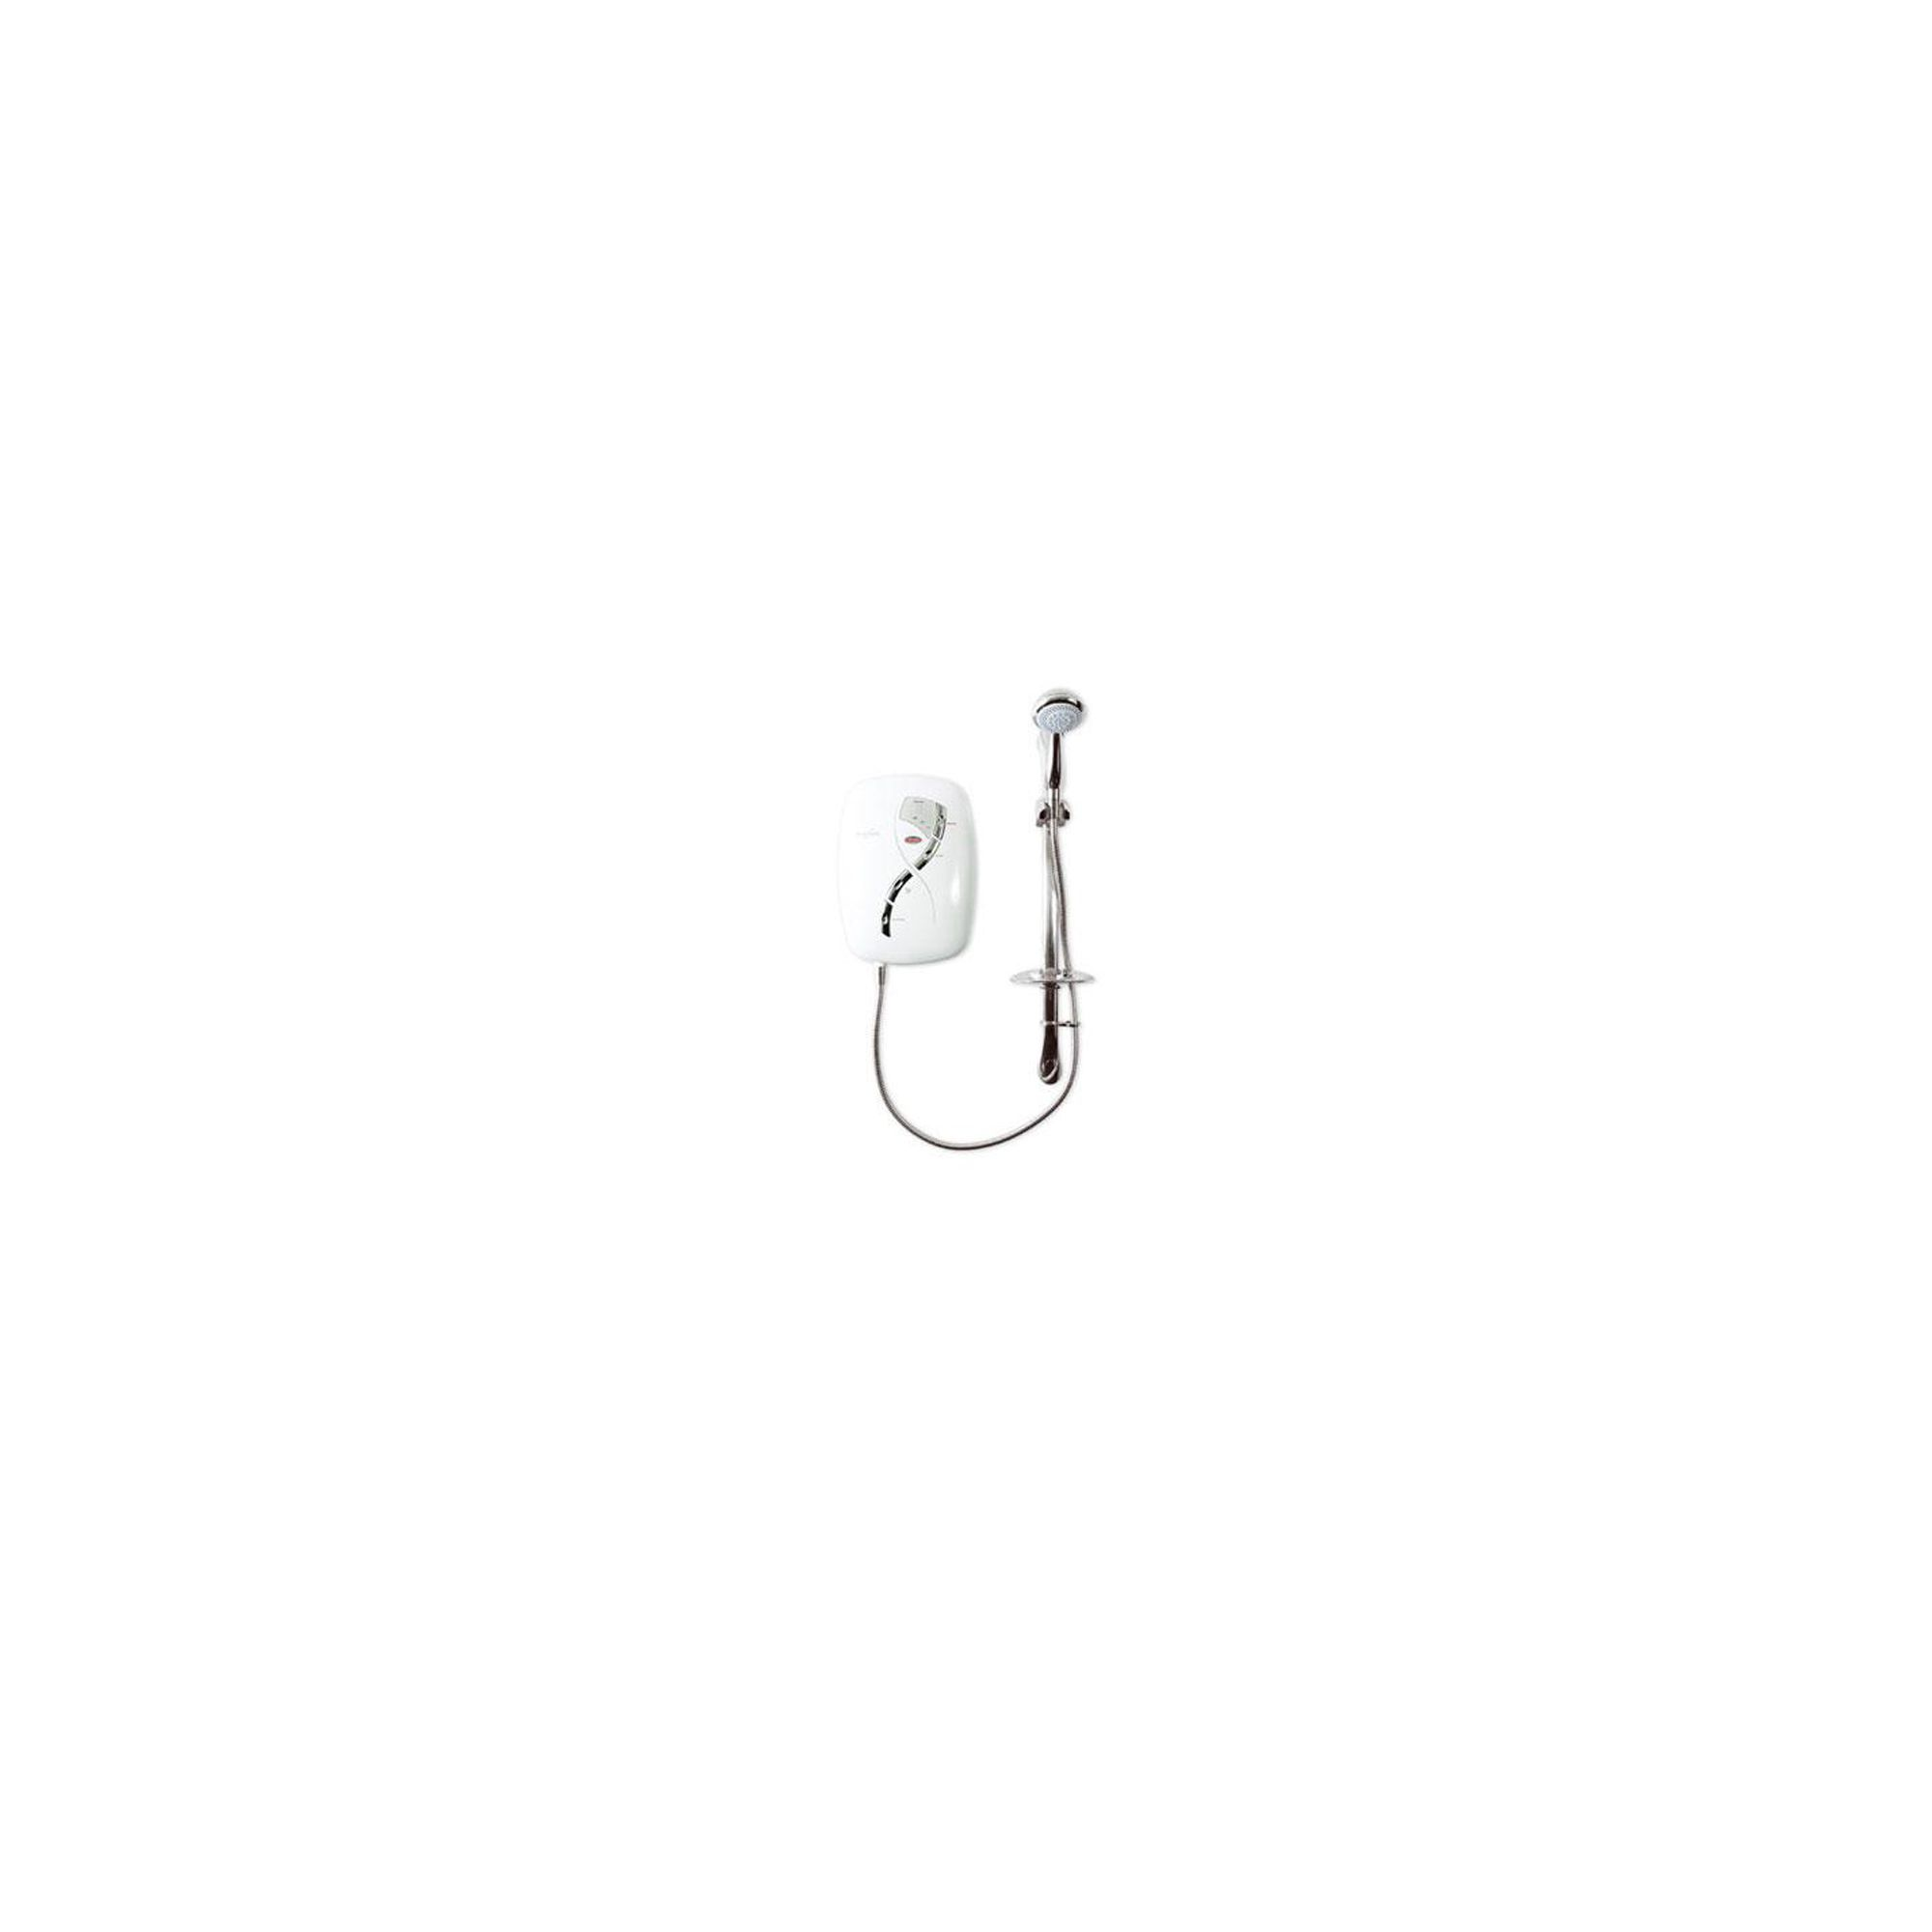 Redring Selectronic Shower Safe Electric Shower White/Chrome 9.5kW at Tesco Direct